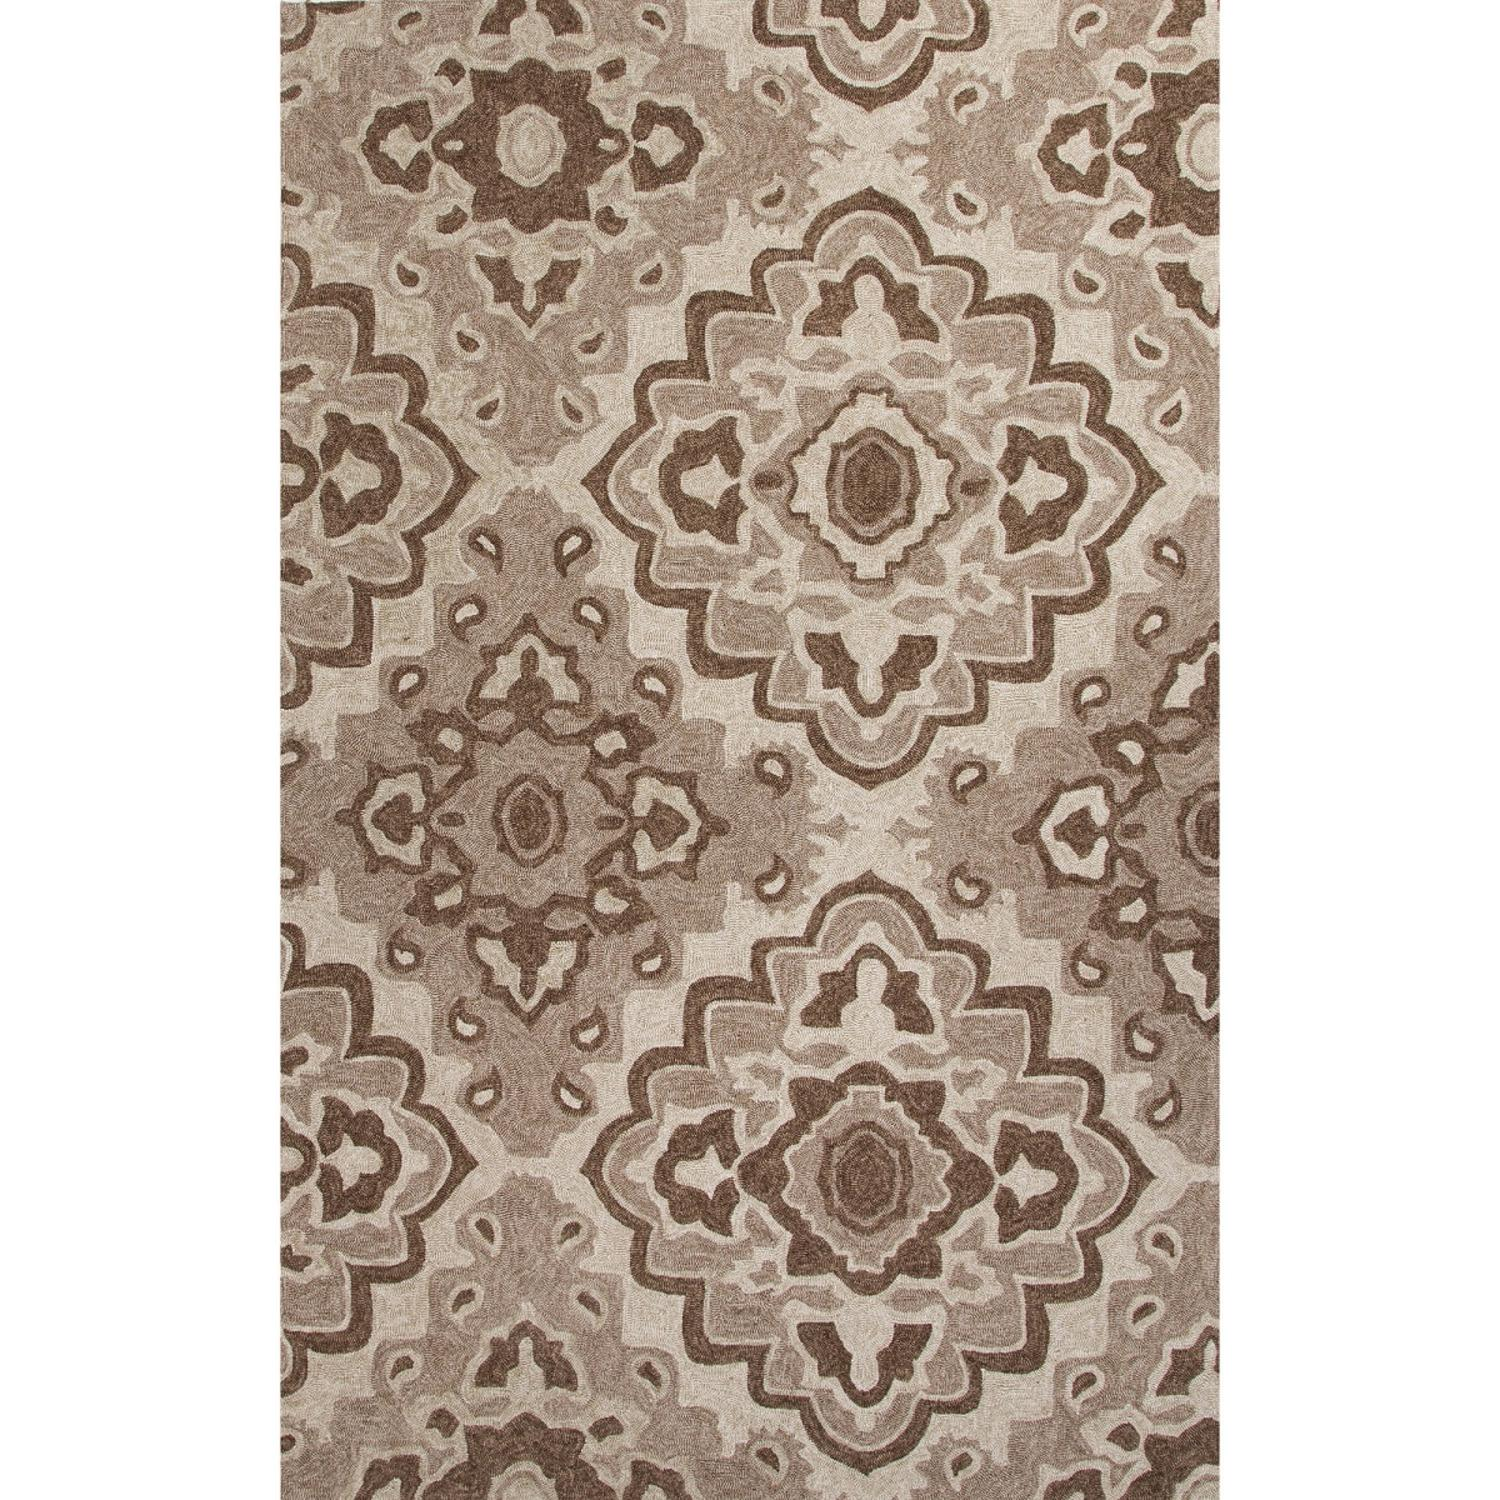 3' x 5' Cream and Coffee Brown Medallion Design Outdoor Area Throw Rug